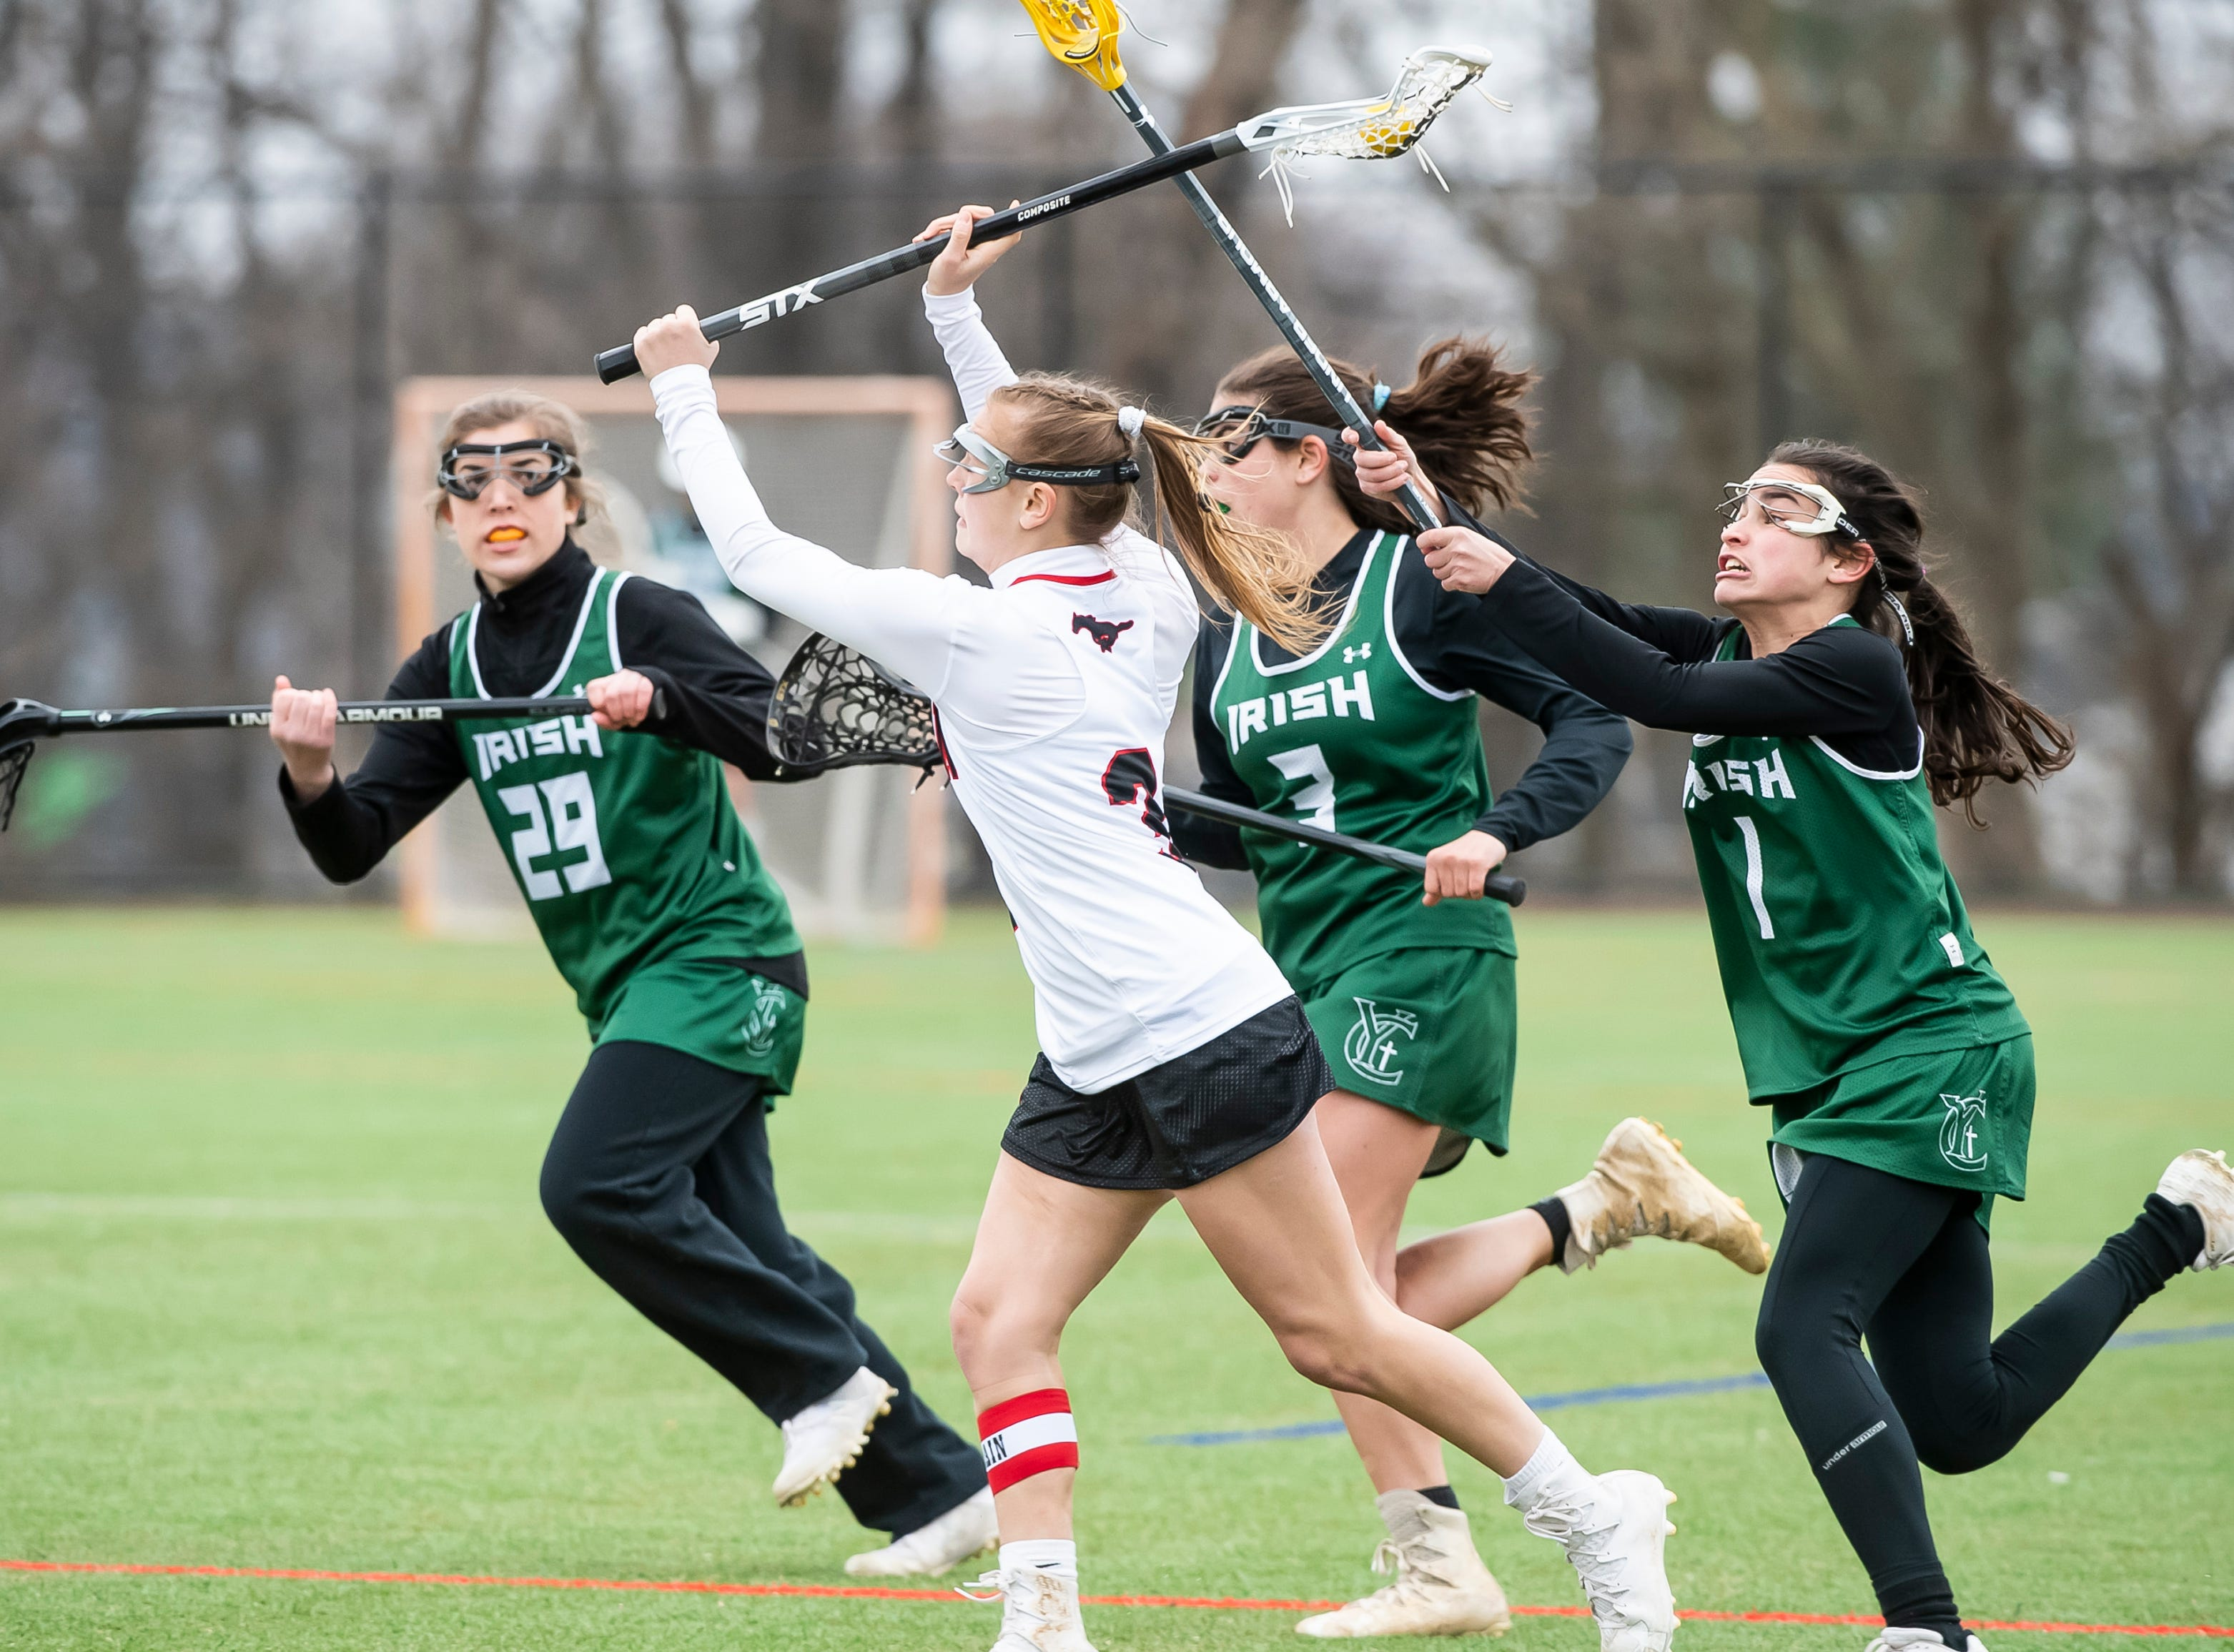 South Western's Sophie Mace gets a pass off while being pressured by York Catholic's Olivia Staples (1) and Shannon Staples (3) during a YAIAA lacrosse game in Hanover on Tuesday, April 2, 2019. South Western fell 19-7.